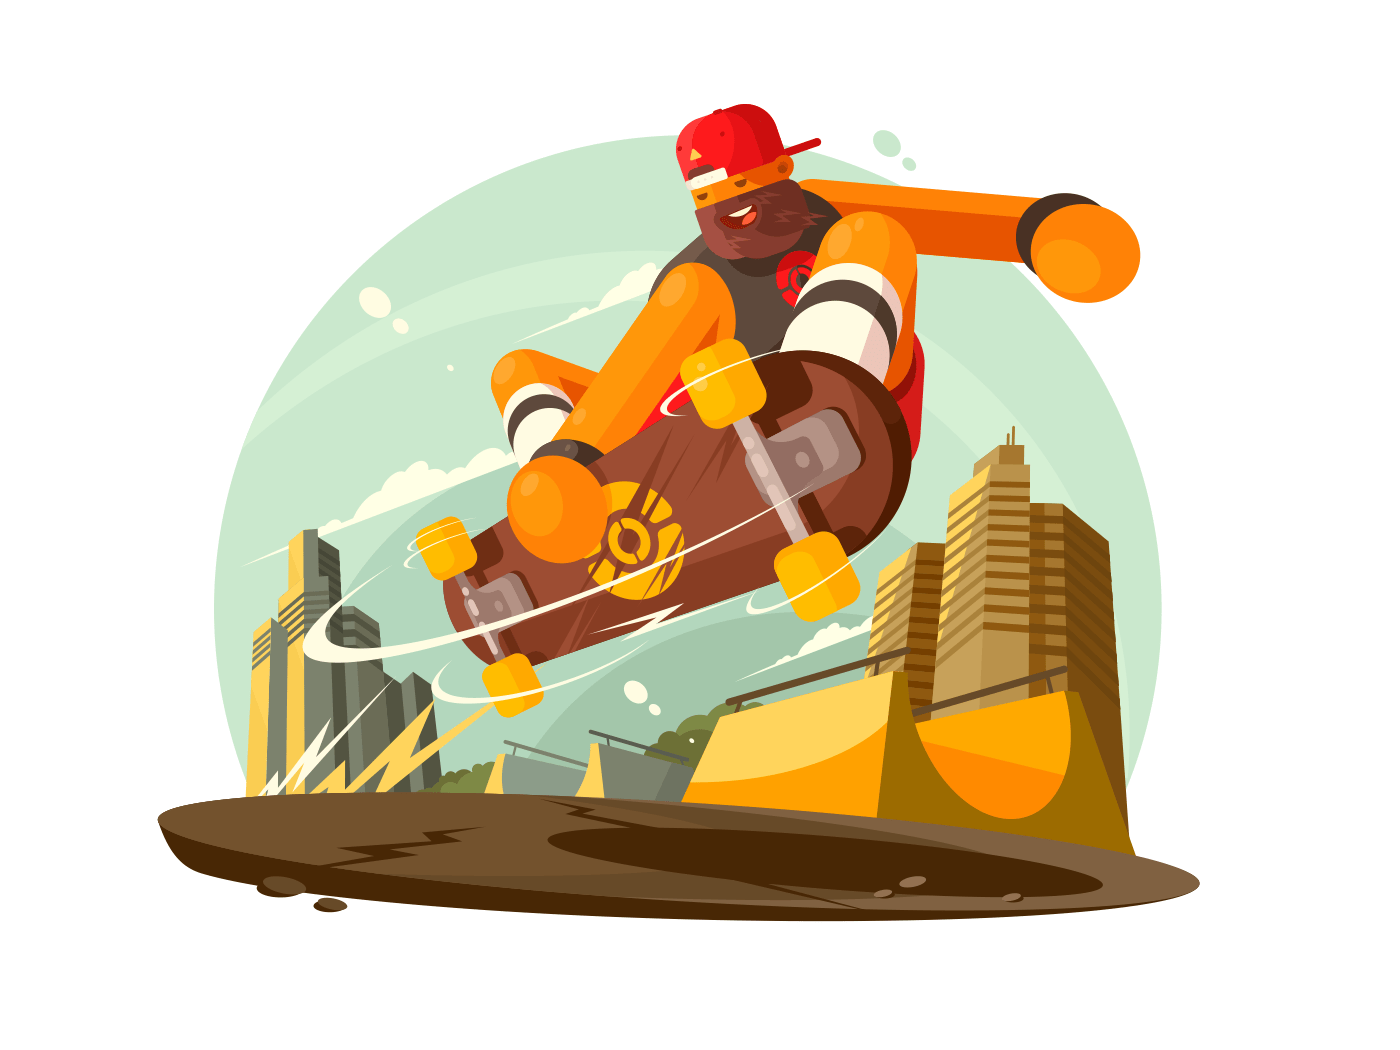 Guy riding skateboard in city illustration